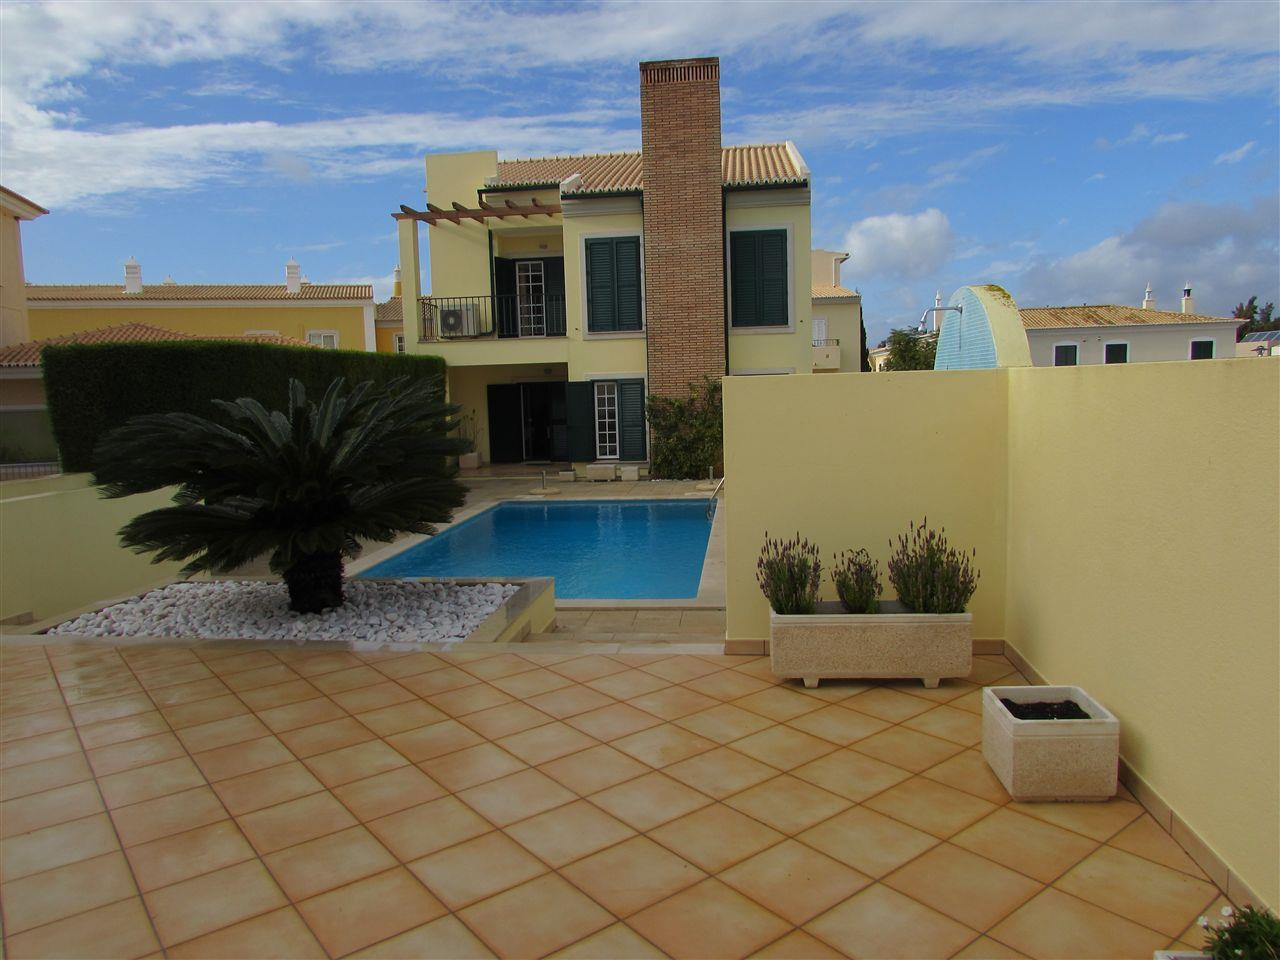 Single Family Home for Sale at Detached house, 4 bedrooms, for Sale Loule, Algarve, 8124-498 Portugal